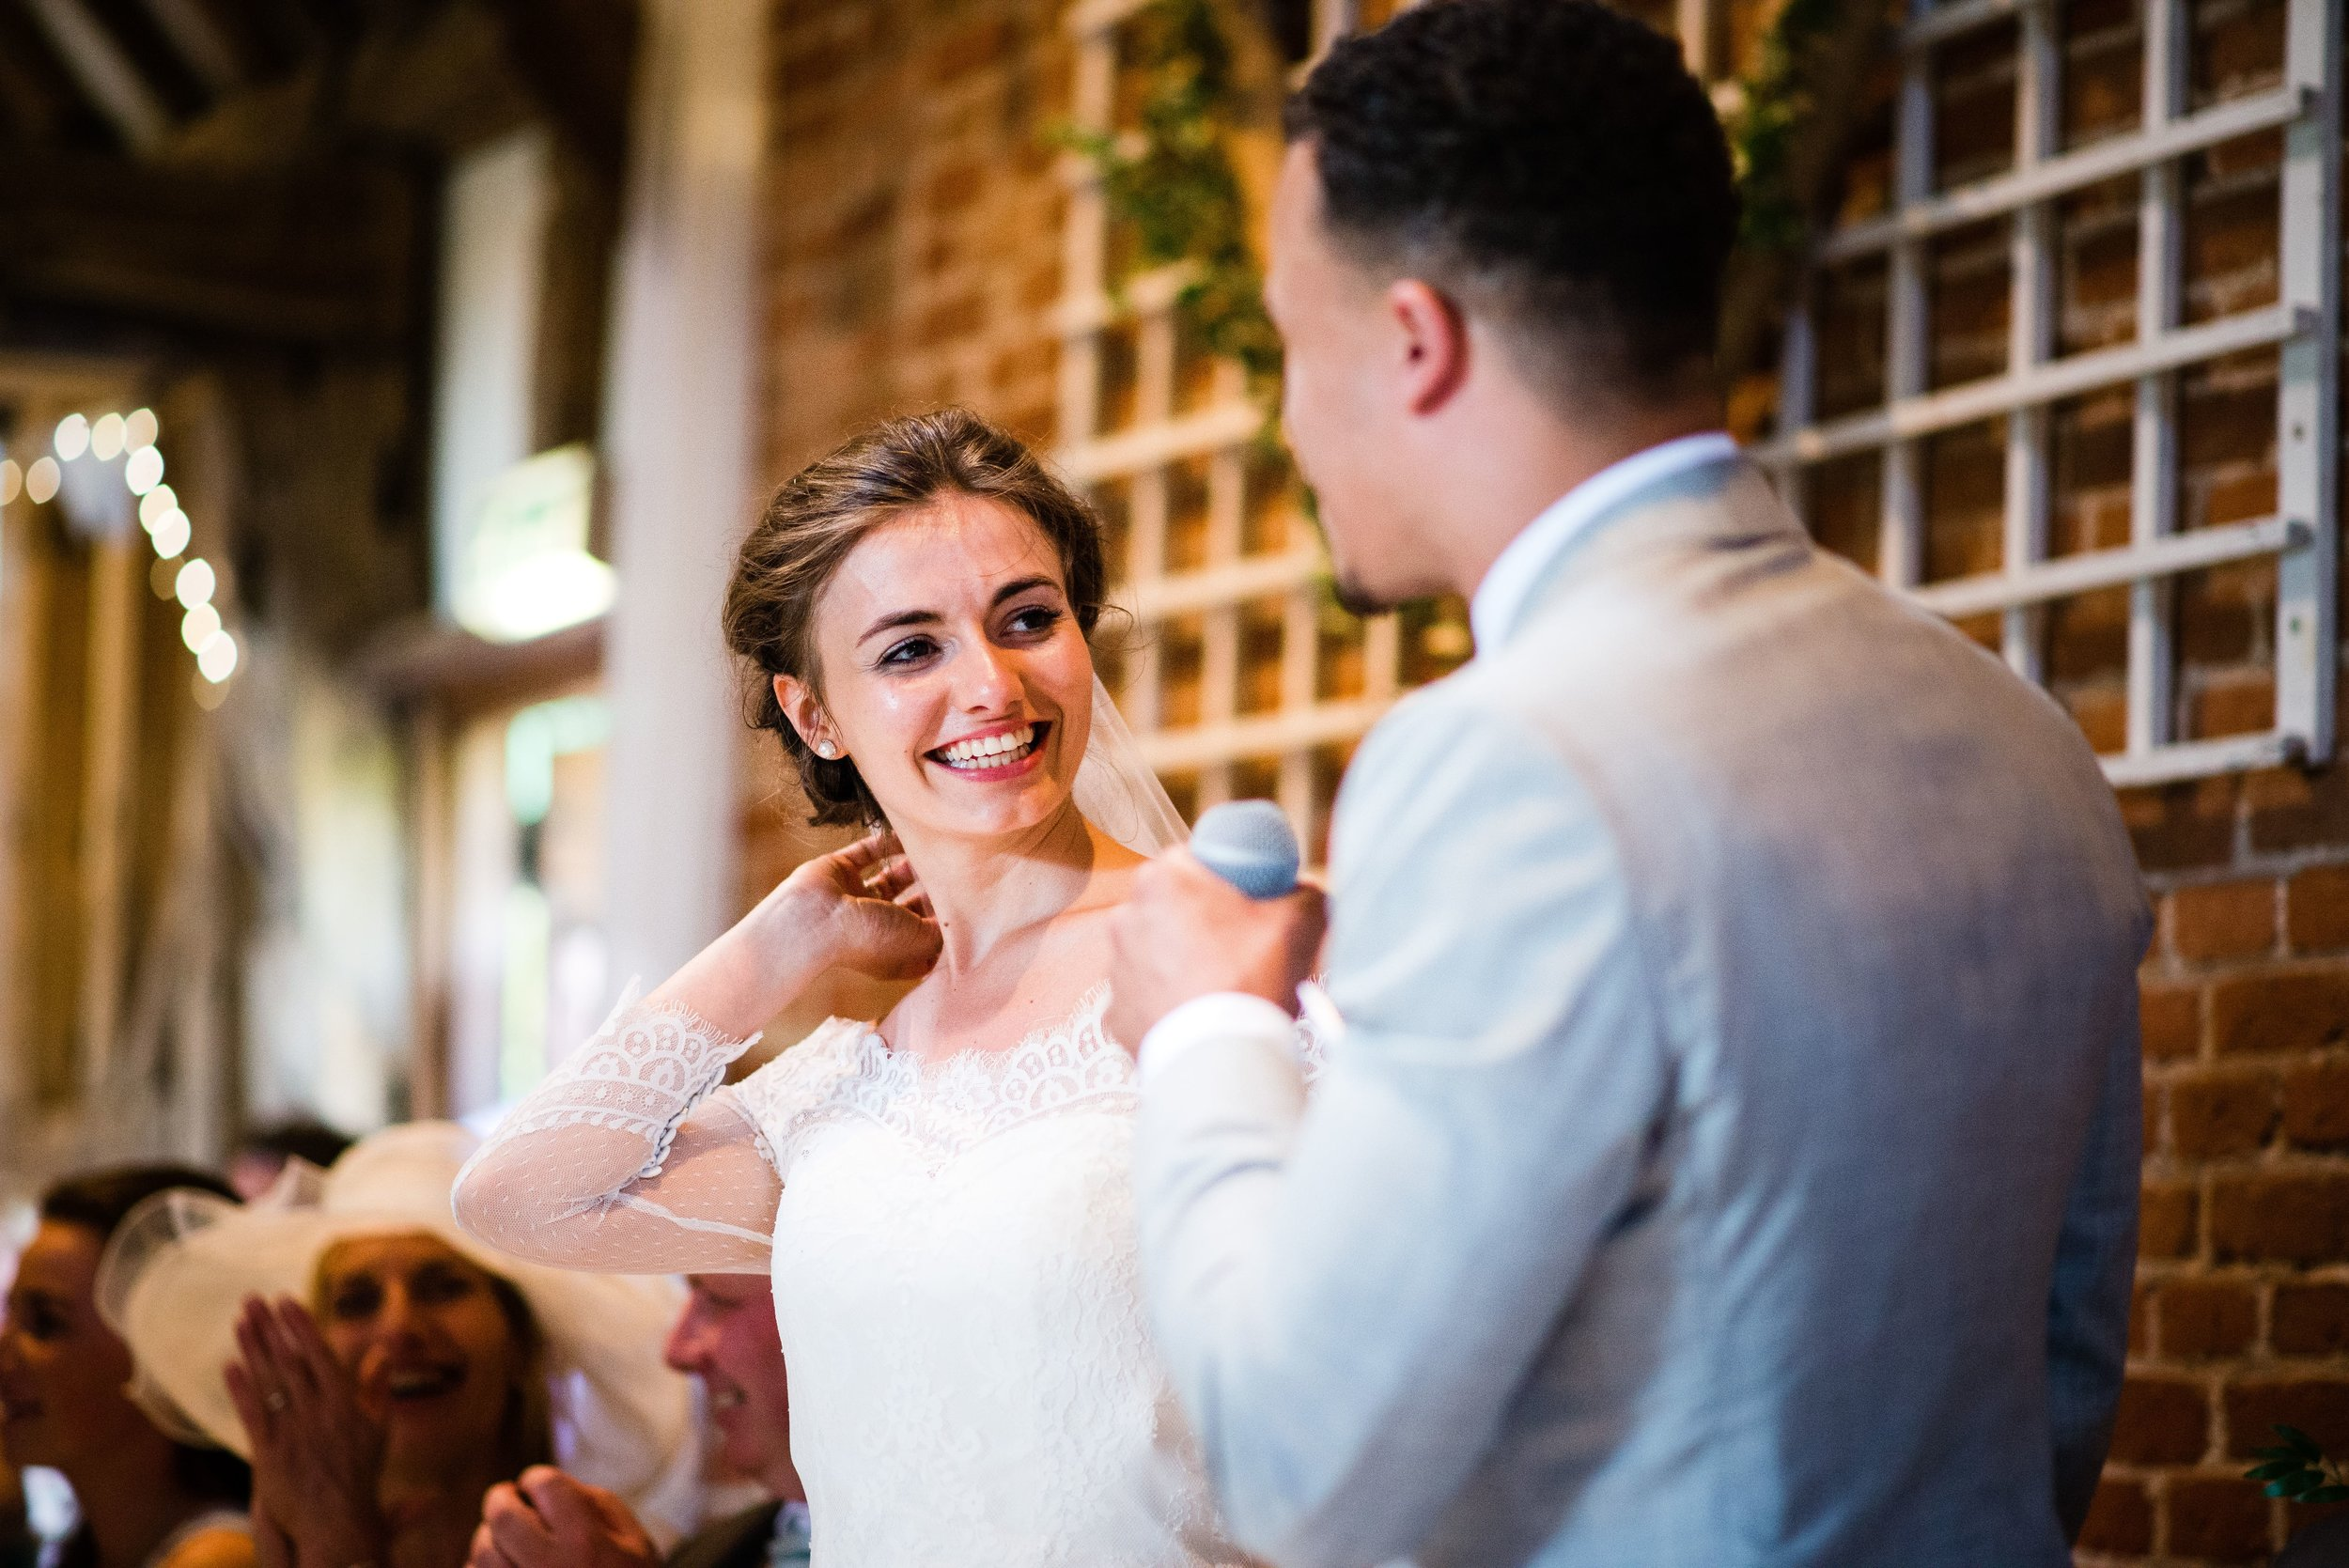 Haughley Park Barn Wedding Photography - Megan & Myles (32).jpg